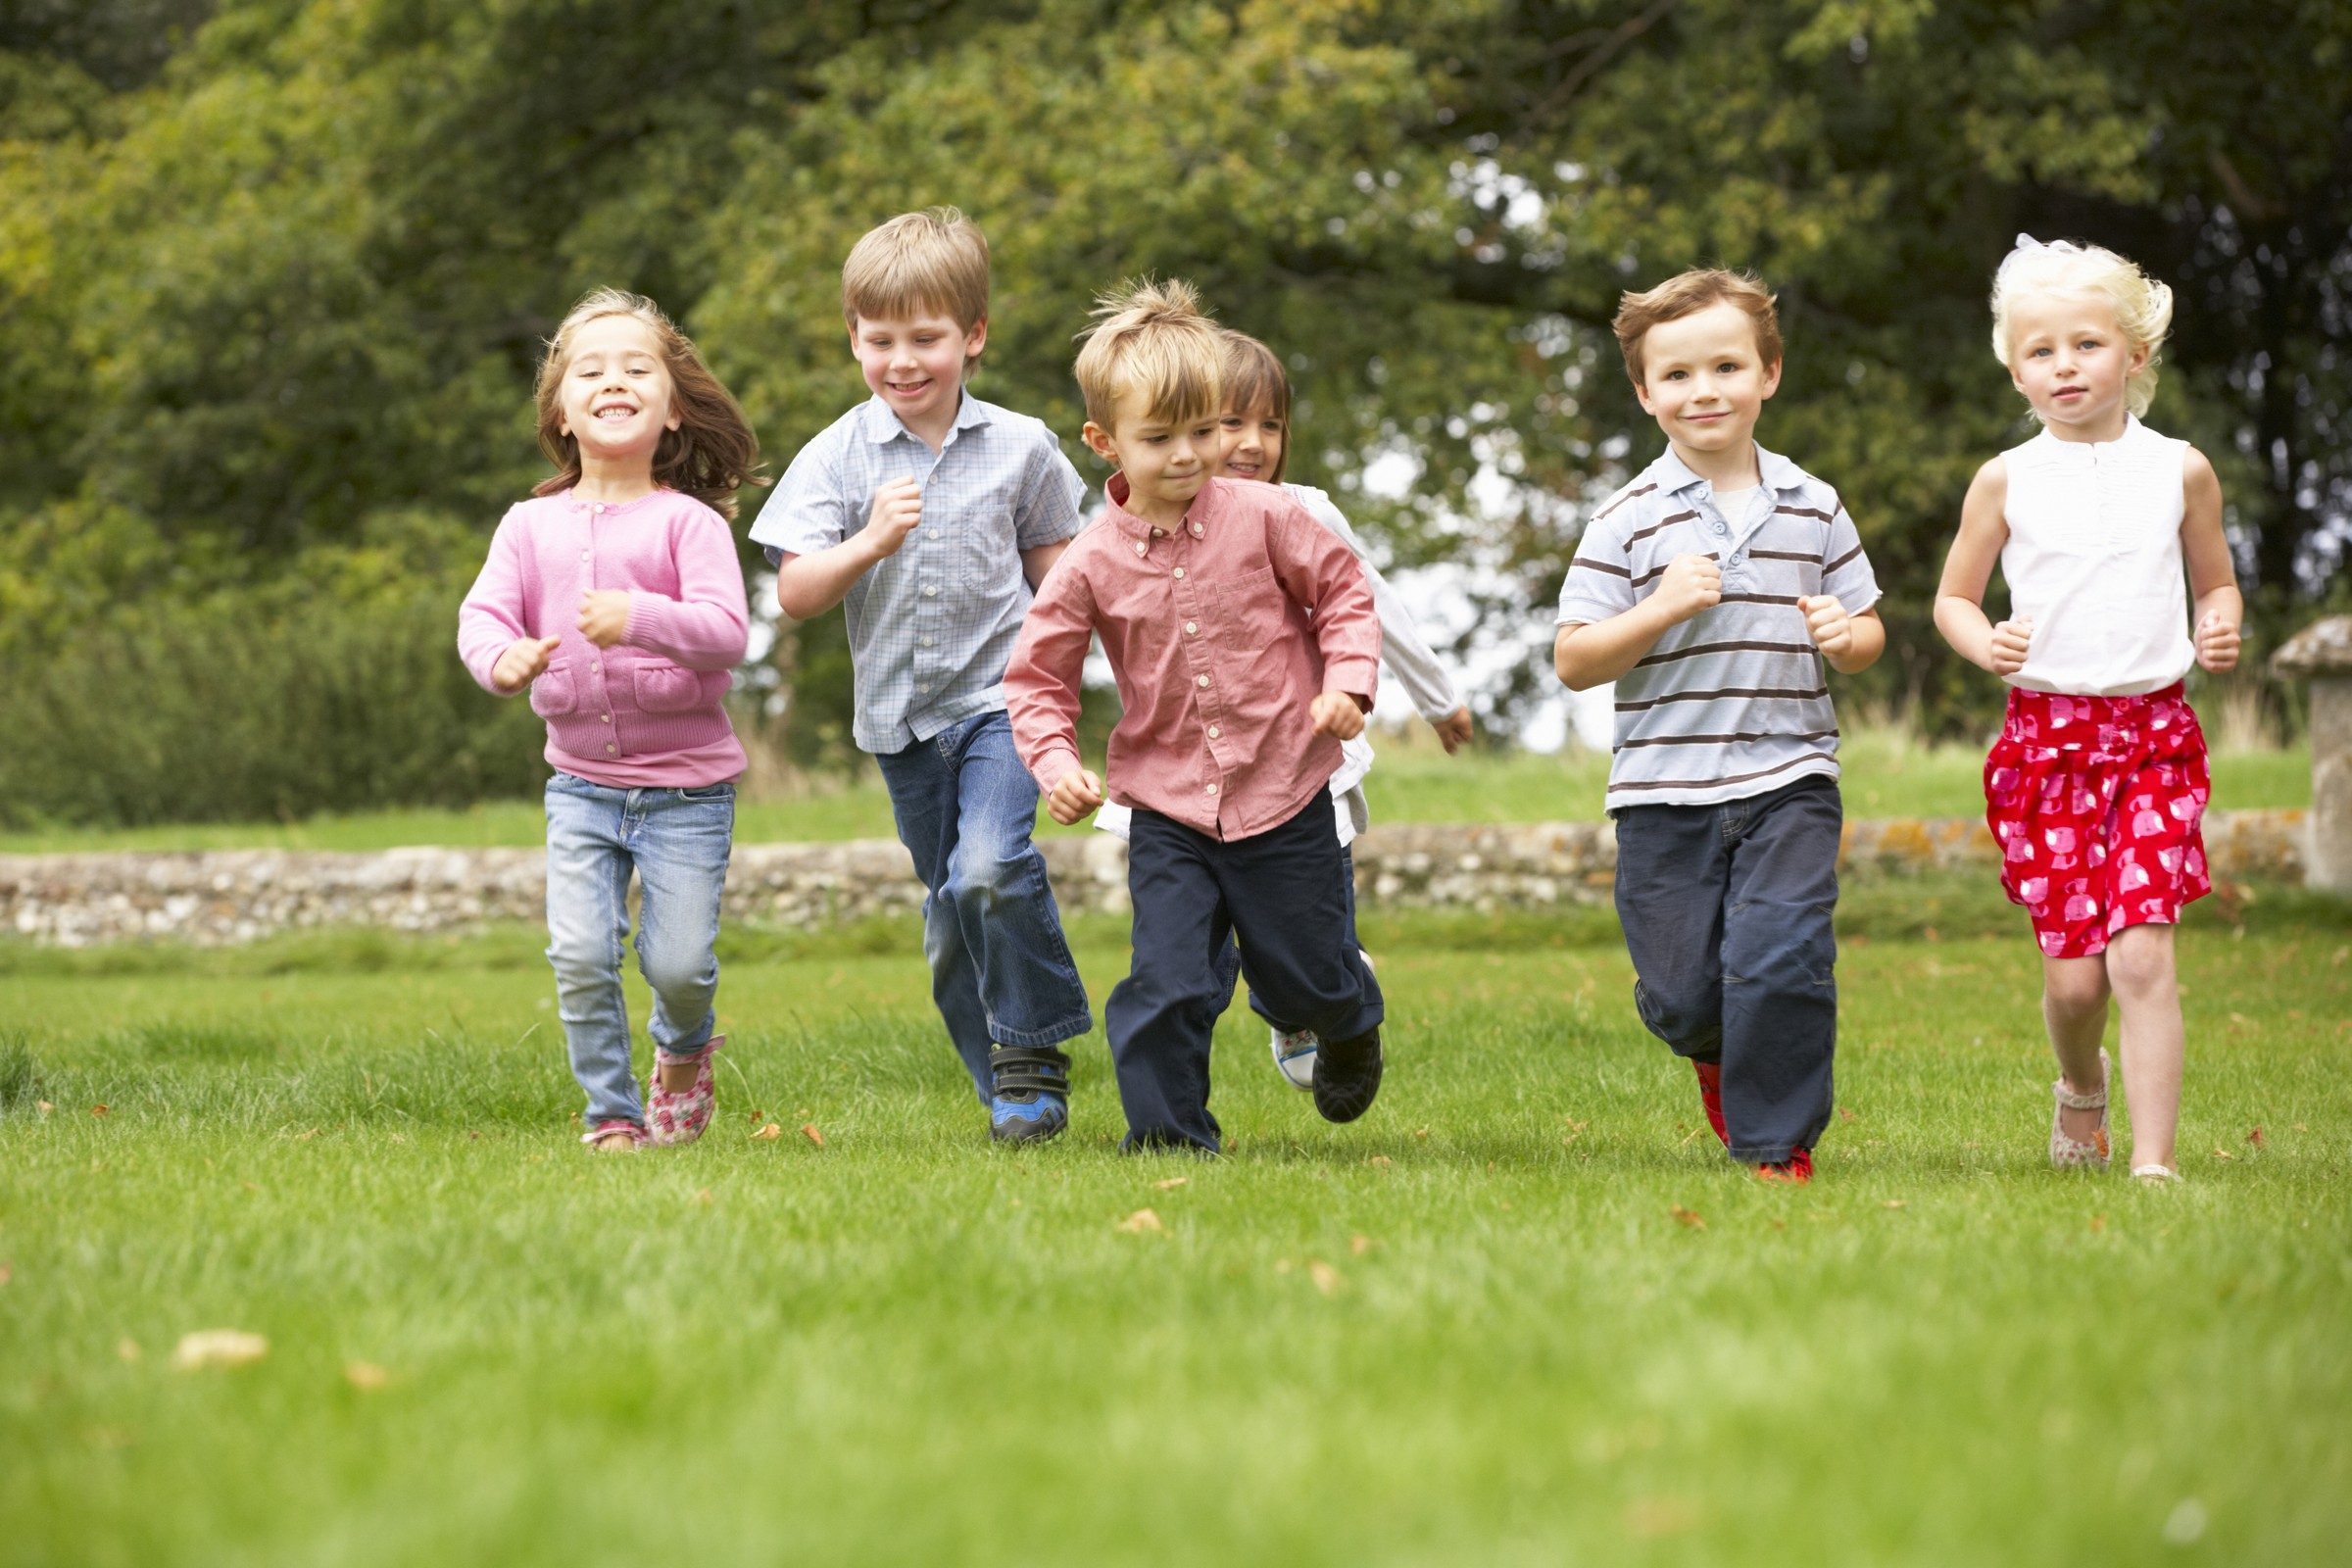 Small group young children running in park